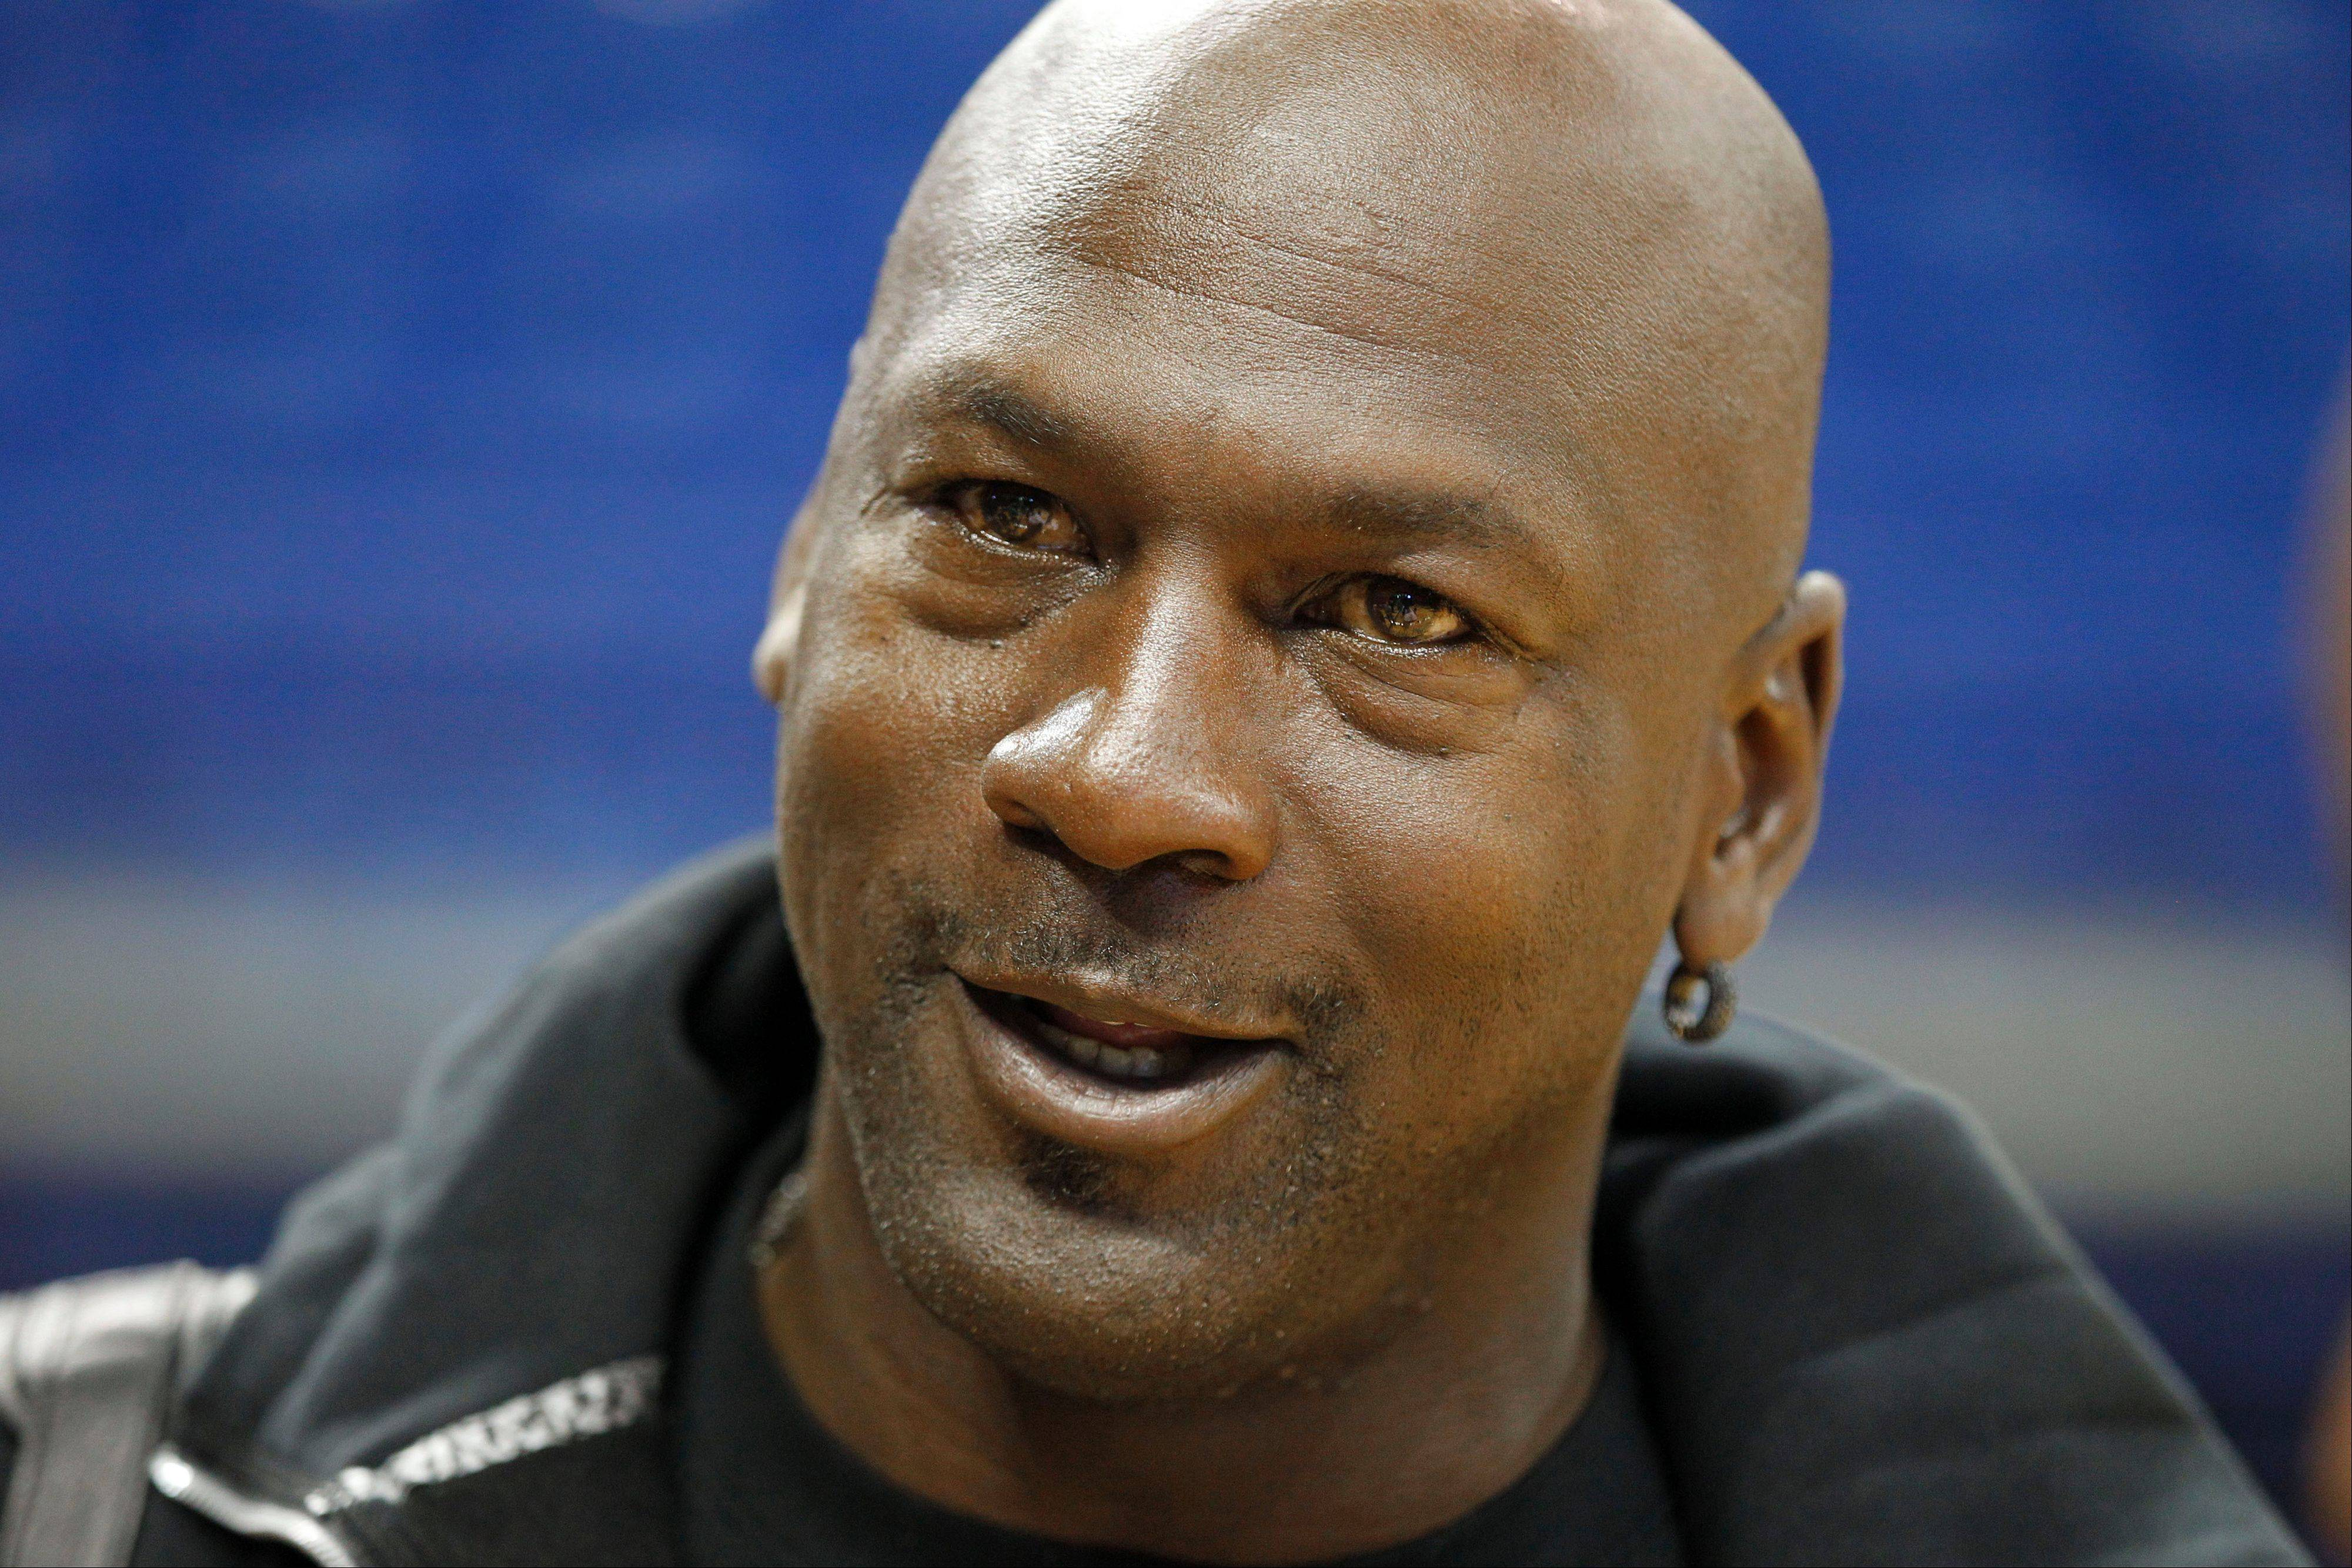 Even at 50 and long gone as an active NBA star, Michael Jordan still casts a very long shadow in professional sports, especially in Chicago and with the Bulls.